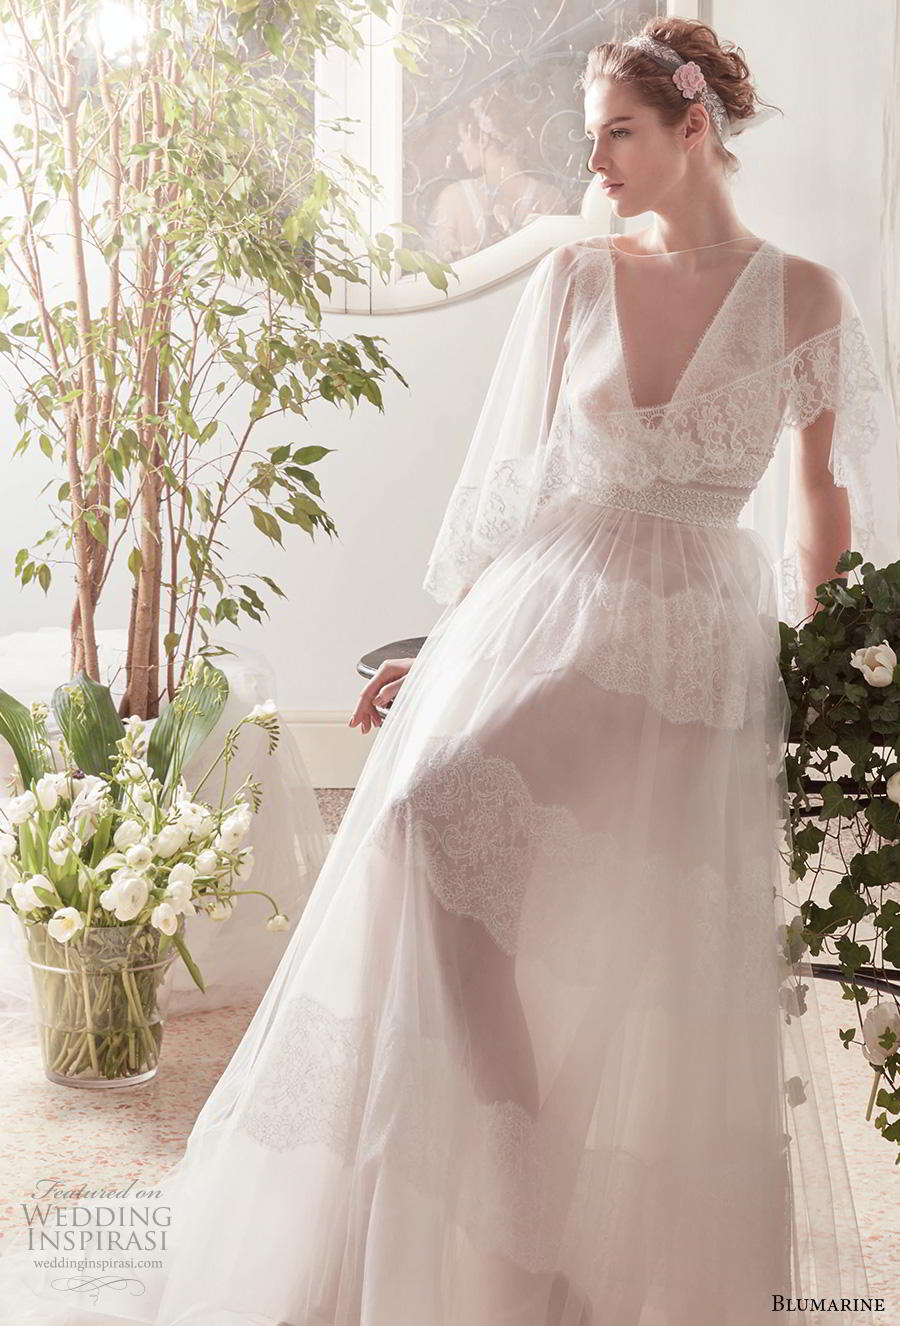 blumarine sposa 2019 bridal sleeveless deep v neck light embellishment romantic bohemian romantic a  line wedding dress bolero strap back chapel train (3) mv